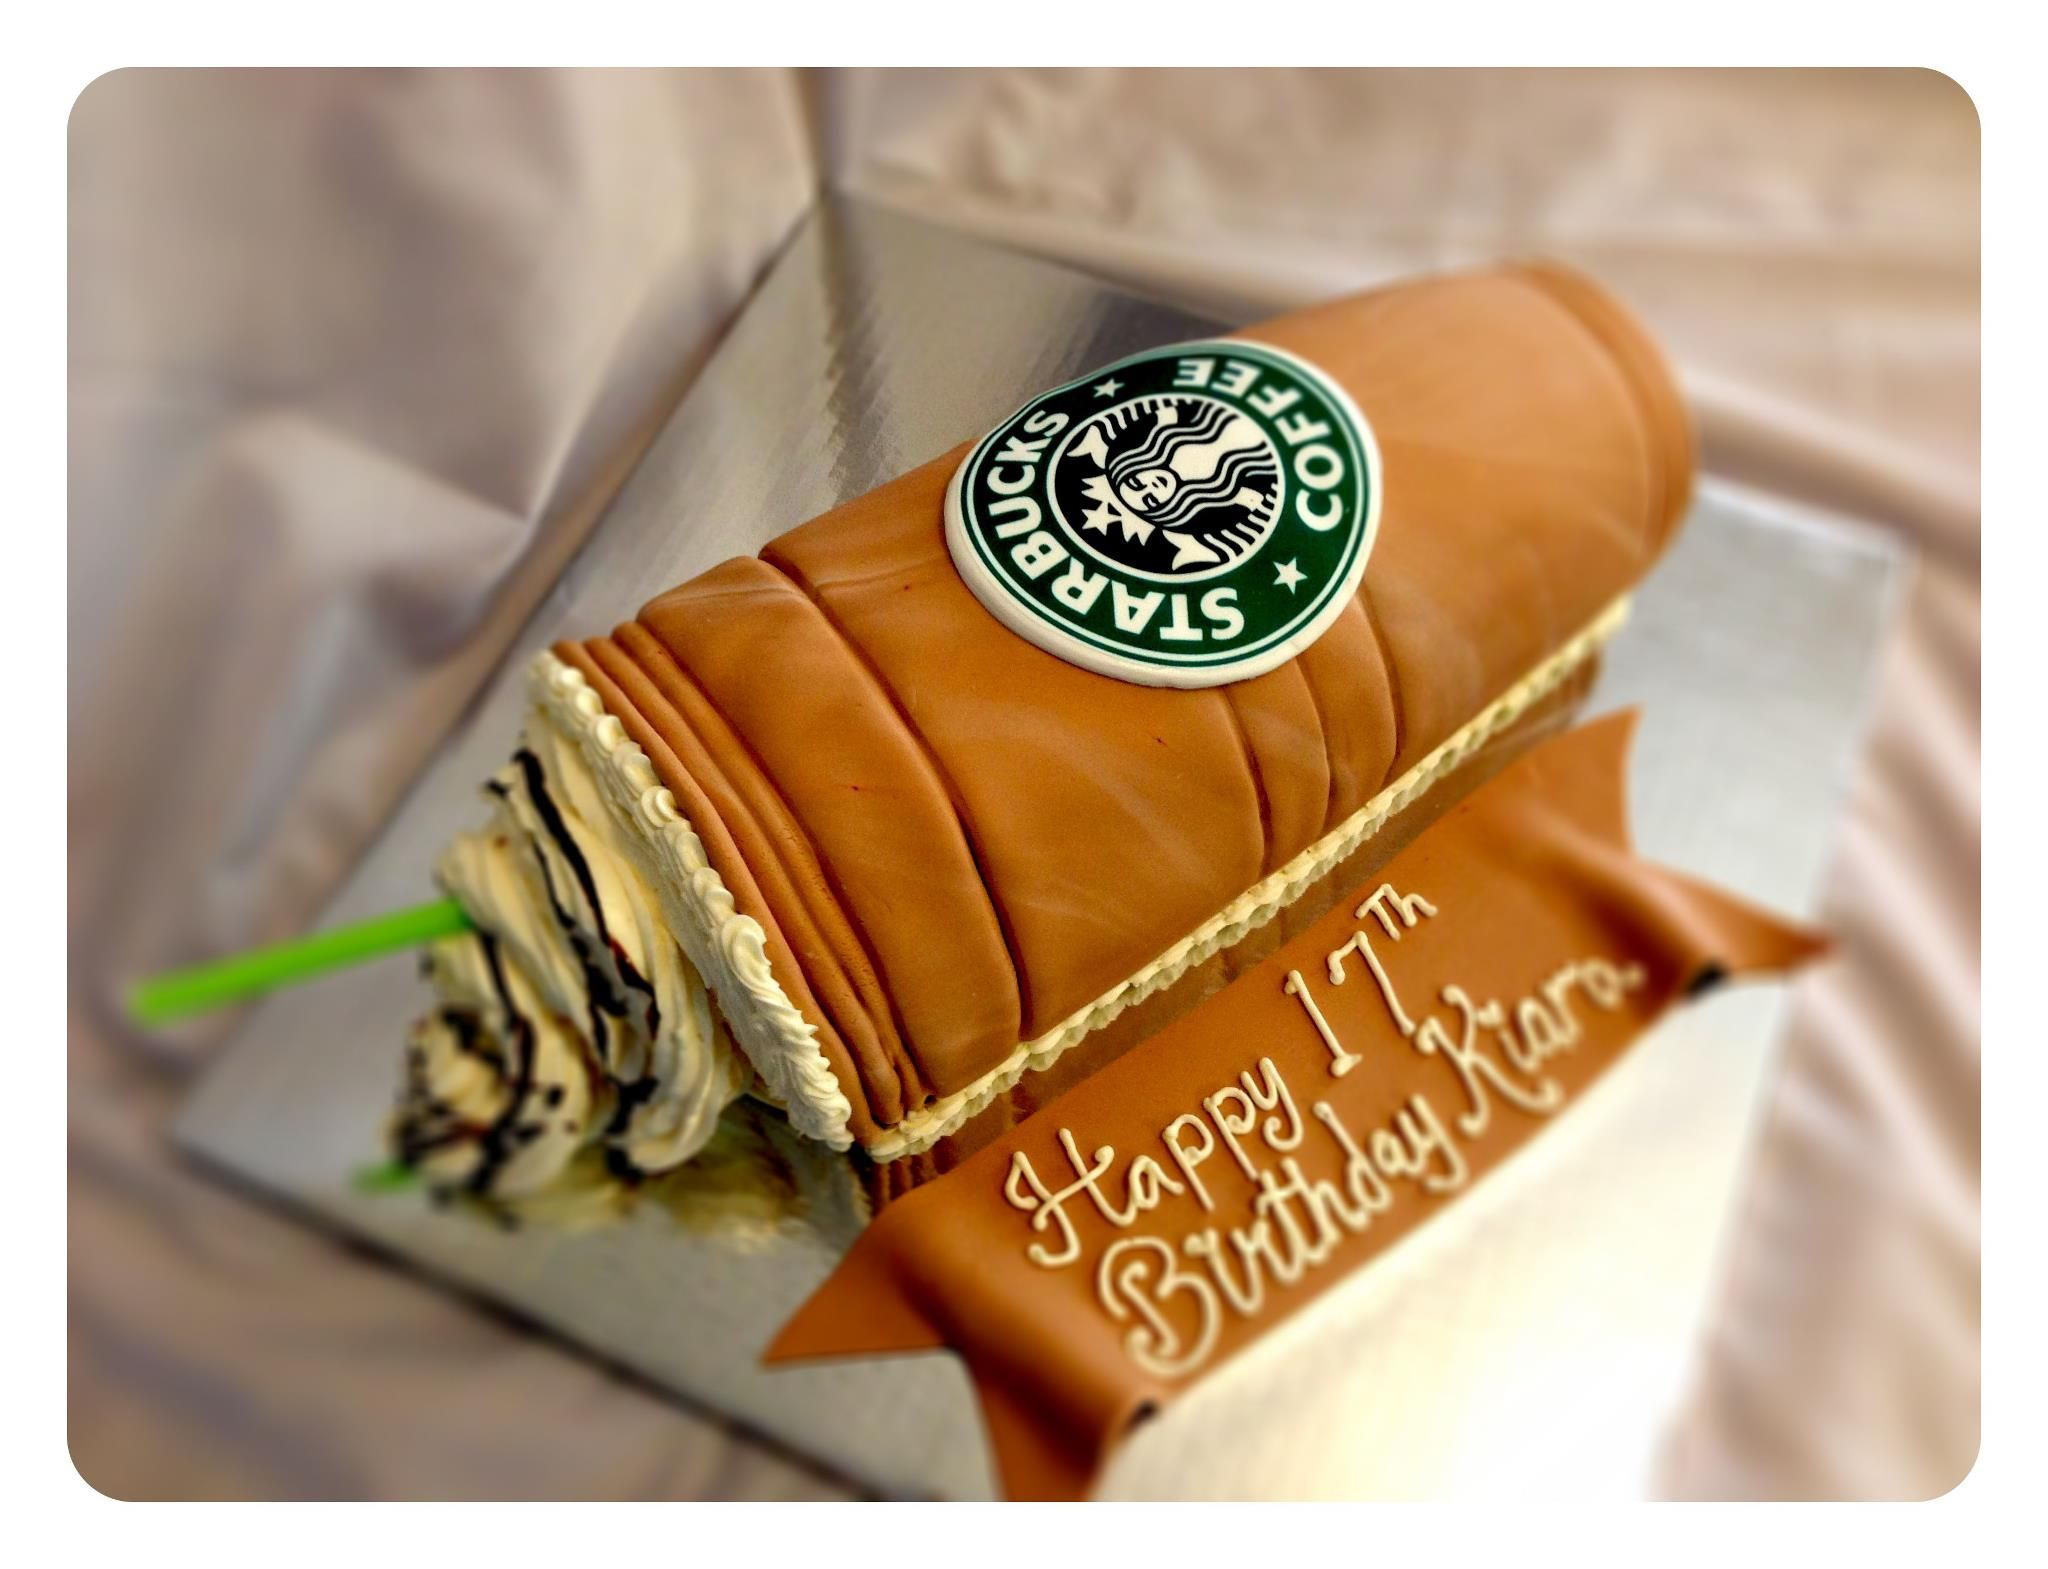 Birthday Cakes Iced Starbucks Coffee All things Starbucks